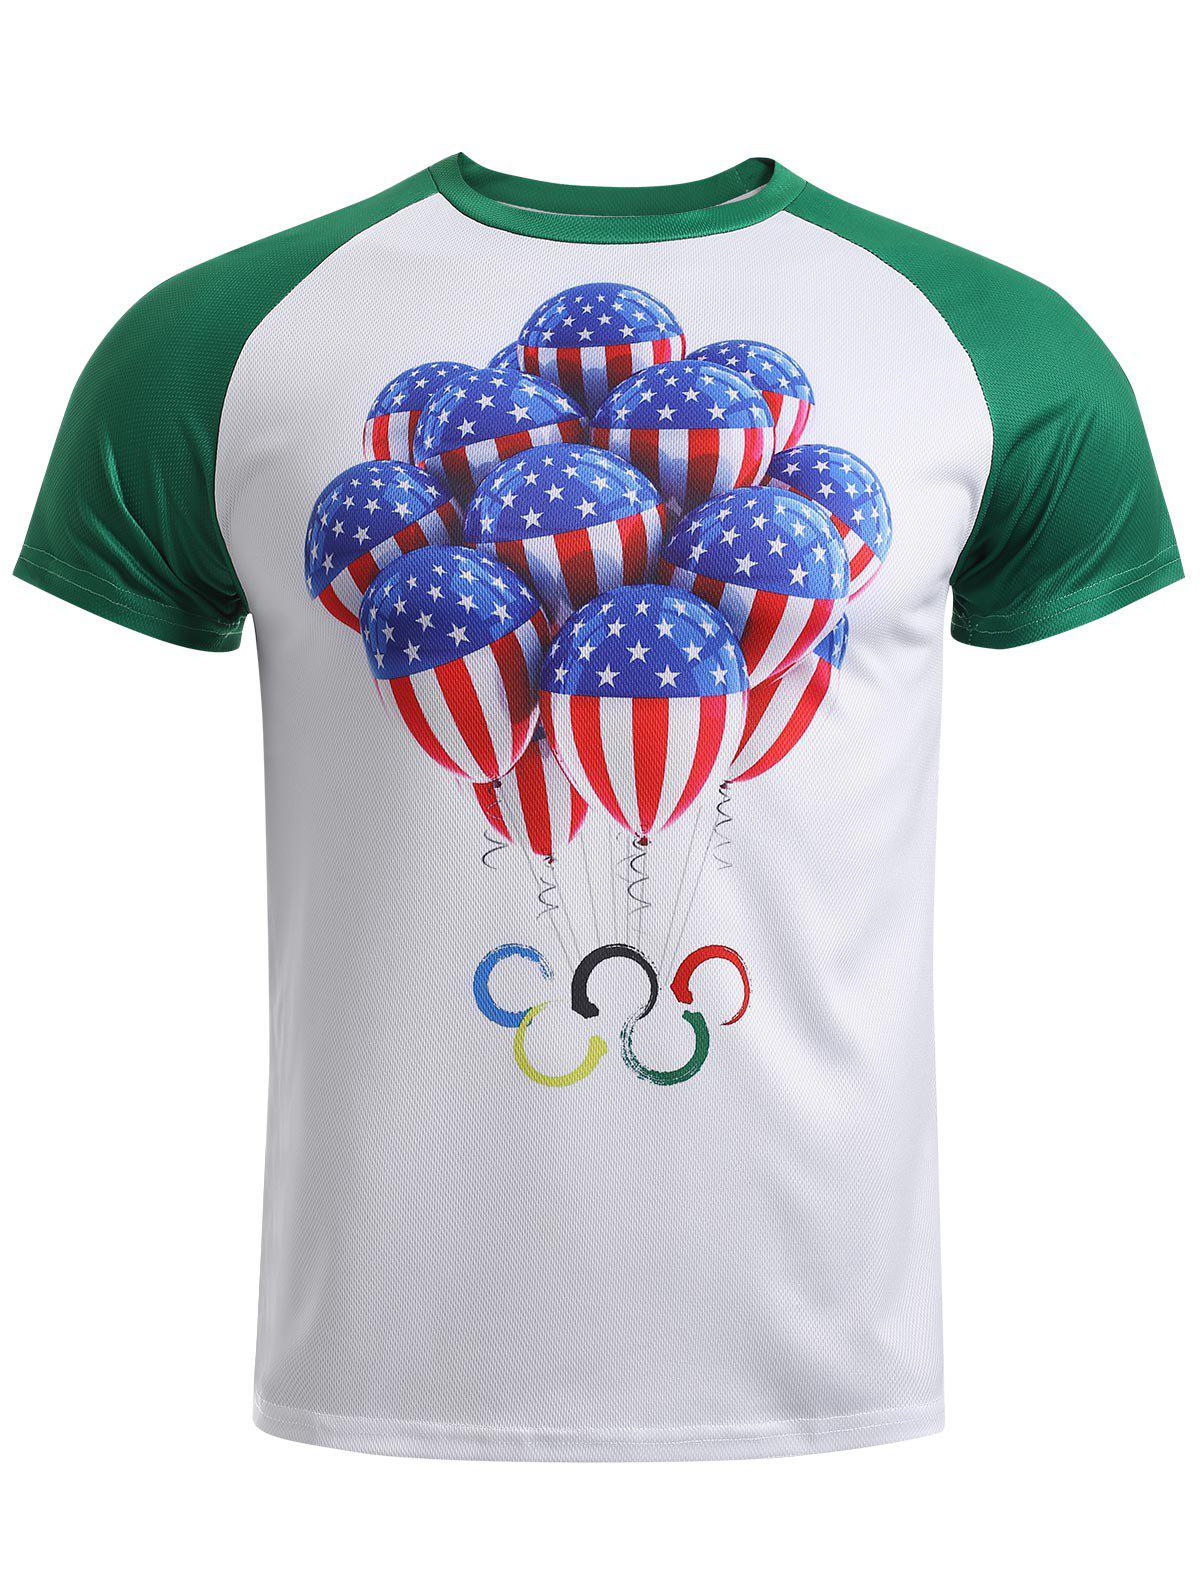 Olympic Balloon Print Round Neck Raglan Sleeve T-Shirt